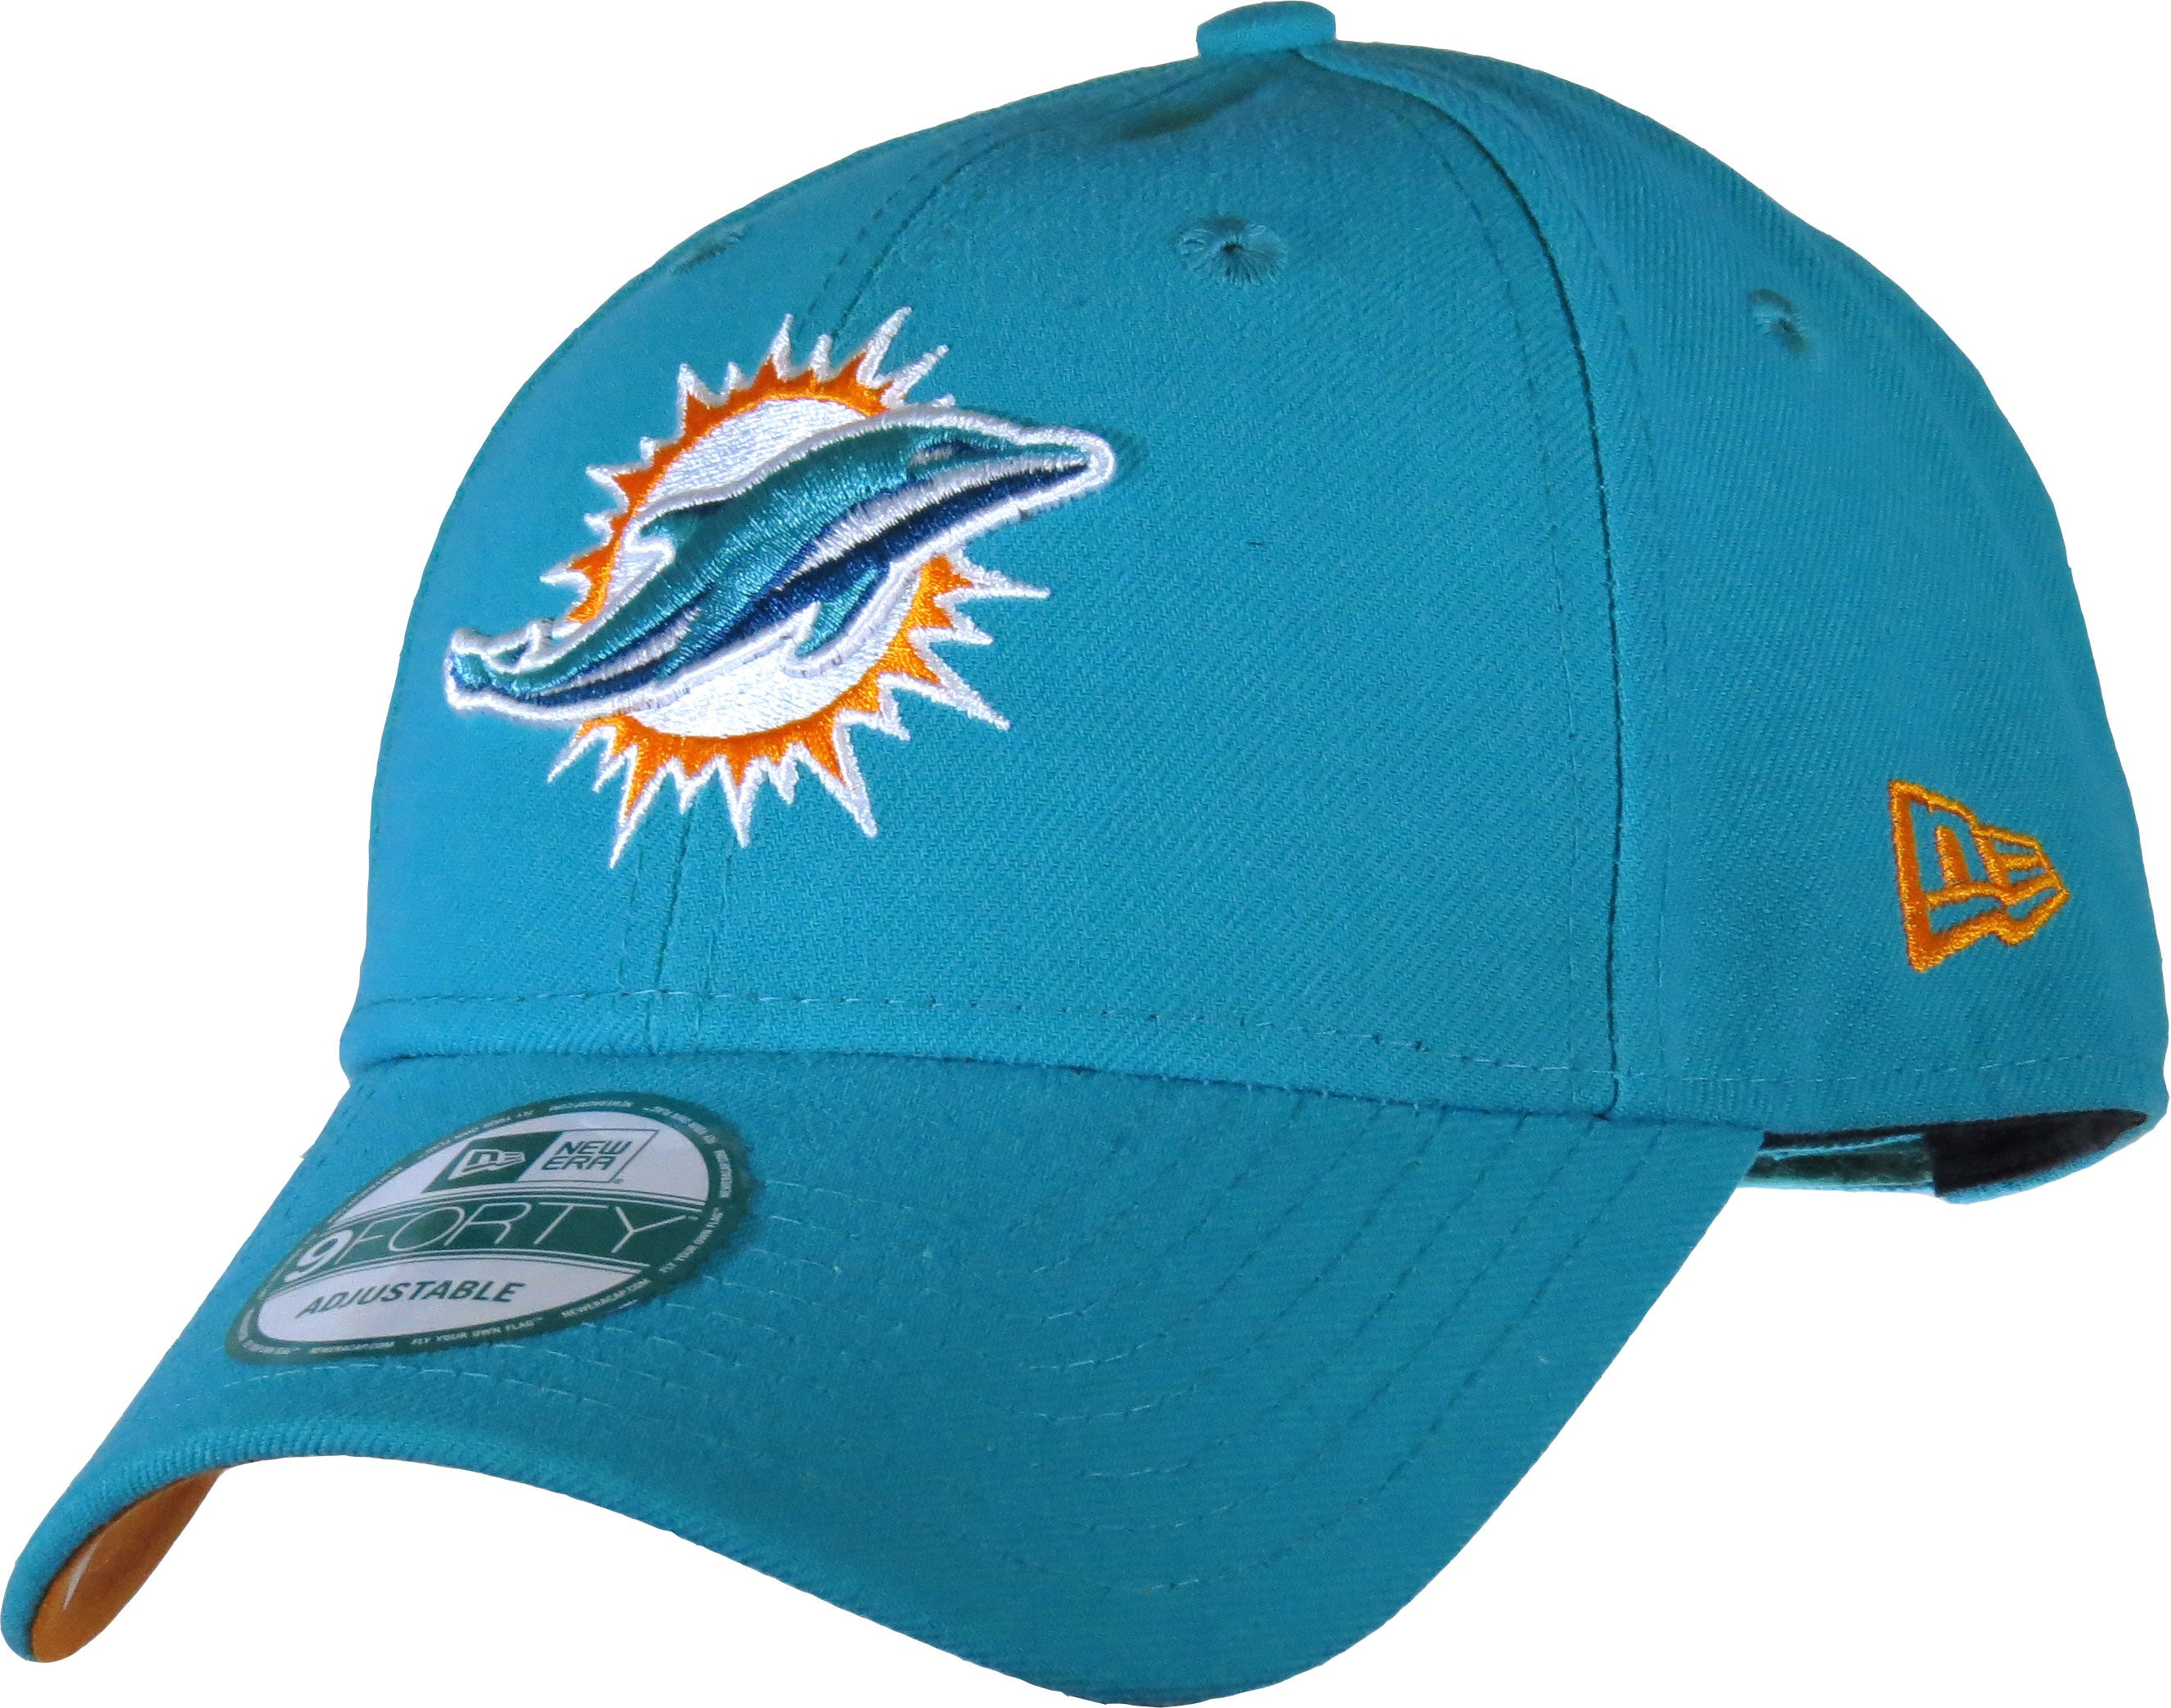 5c3523e1b87 Miami Dolphins New Era 940 The League NFL Adjustable Cap - pumpheadgear